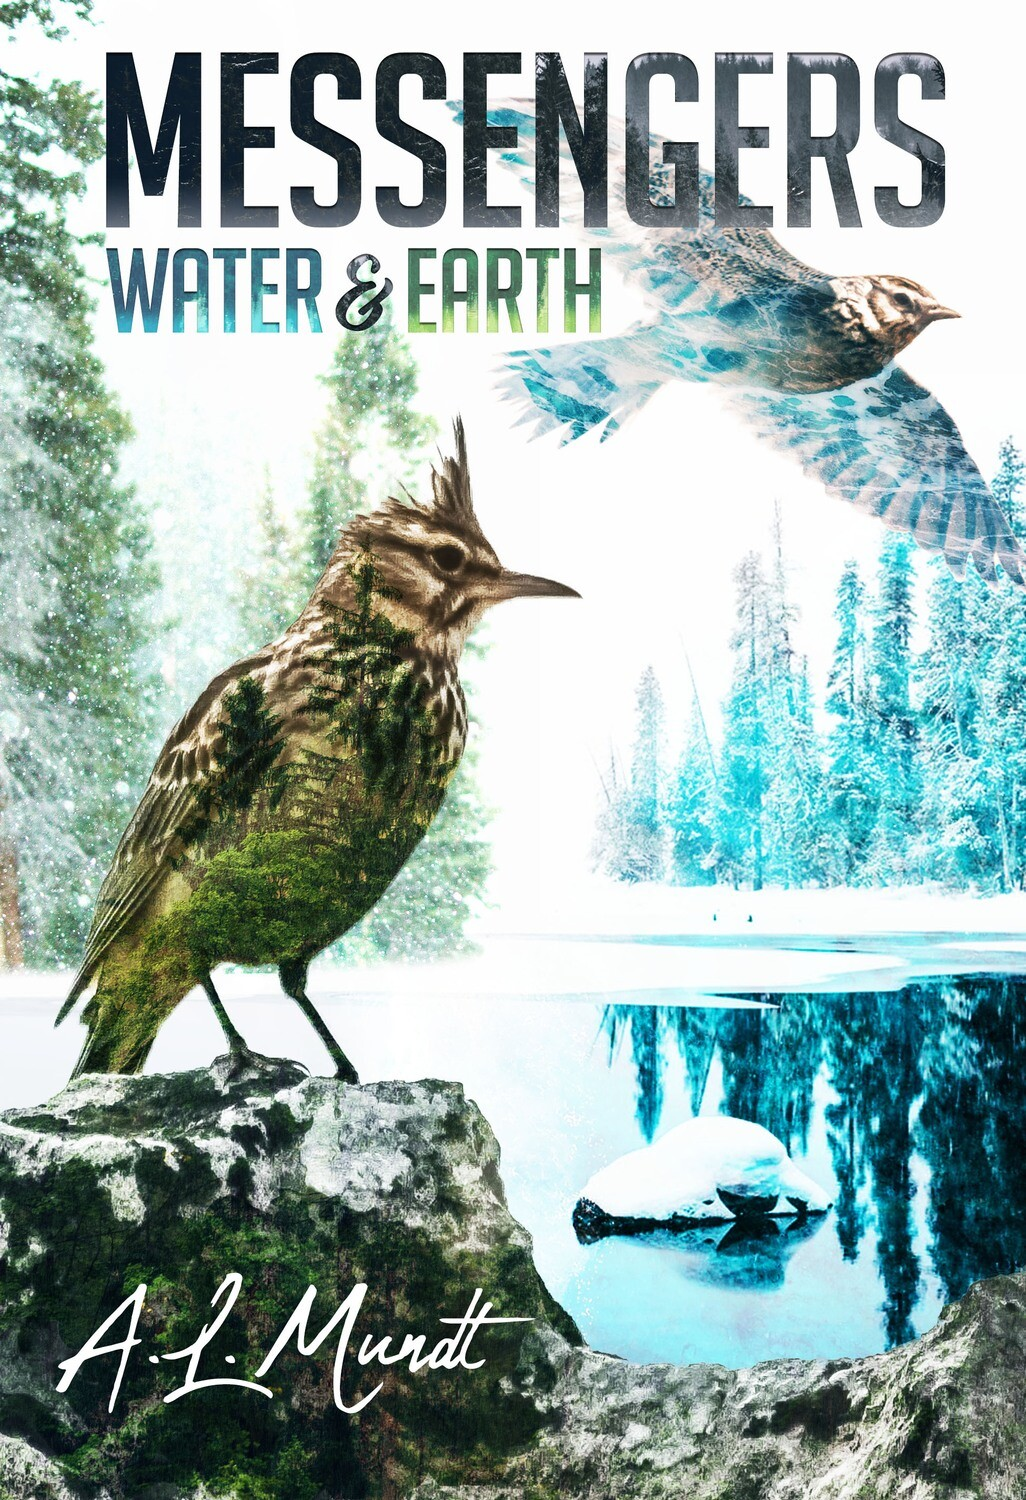 PRE-ORDER: Water & Earth: Book 1 of the Messengers Series by A.L. Mundt